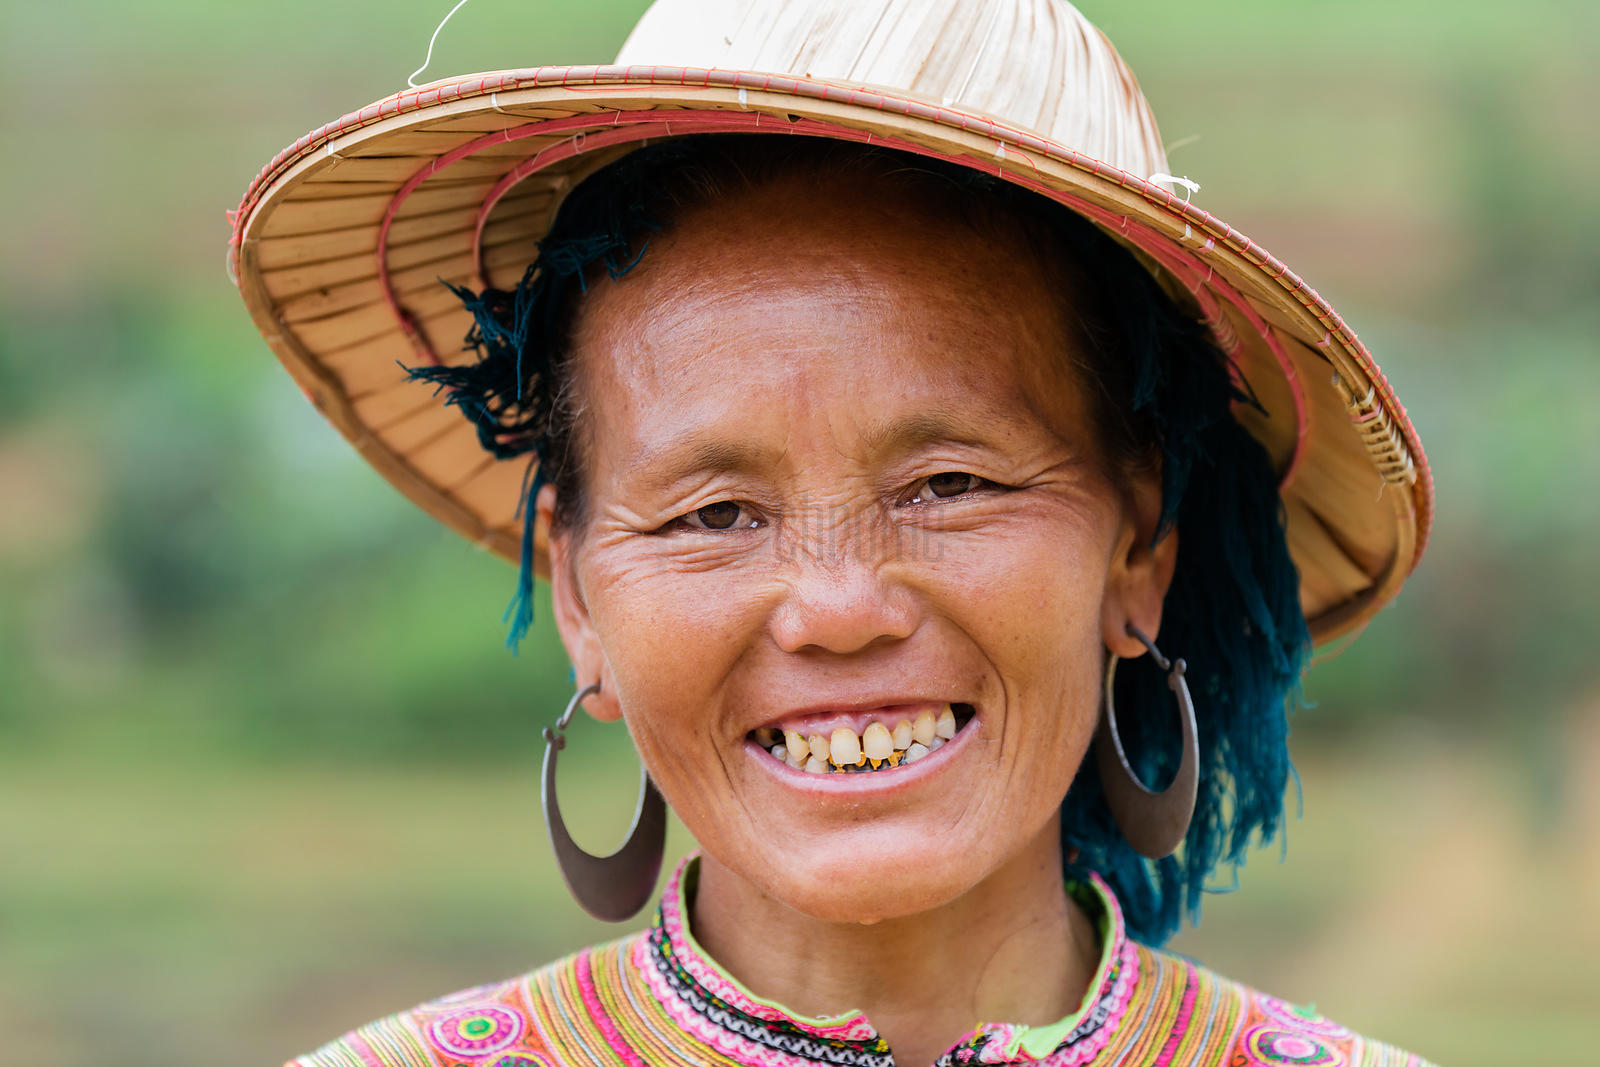 Portrait of Flower Hmong Woman